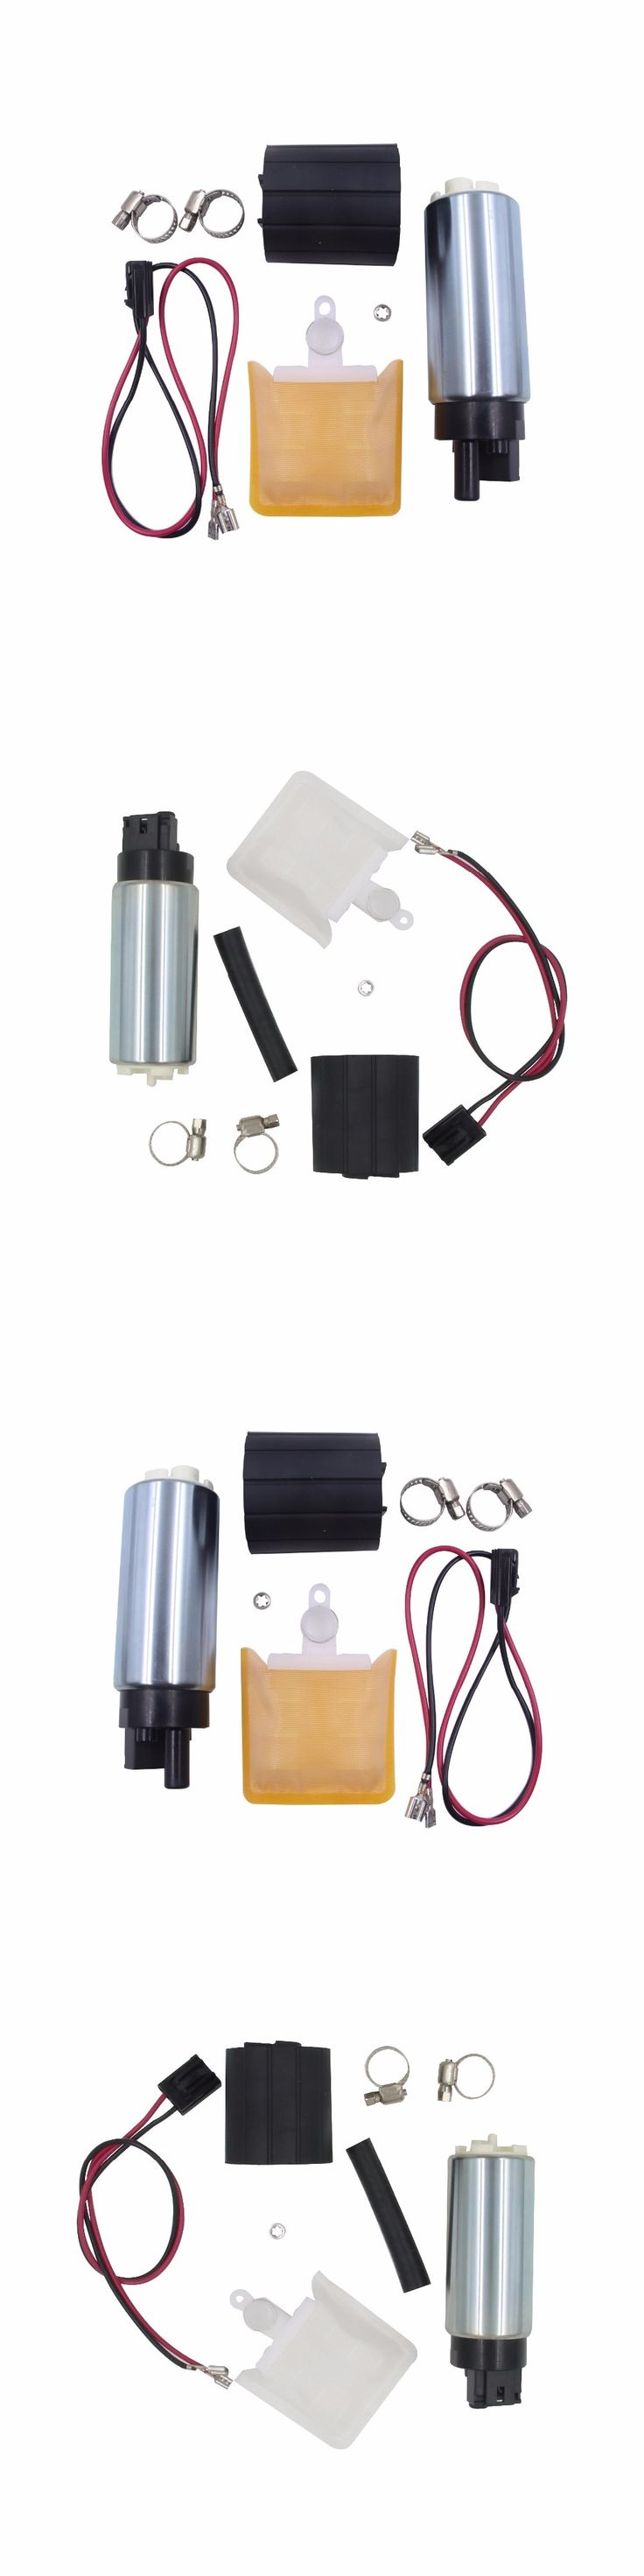 Electric Fuel Pump ReplacementFor Car Plymouth Colt Laser Scion tC Subaru Forester Impreza Legacy Outback Tribeca GSS342 255LPH